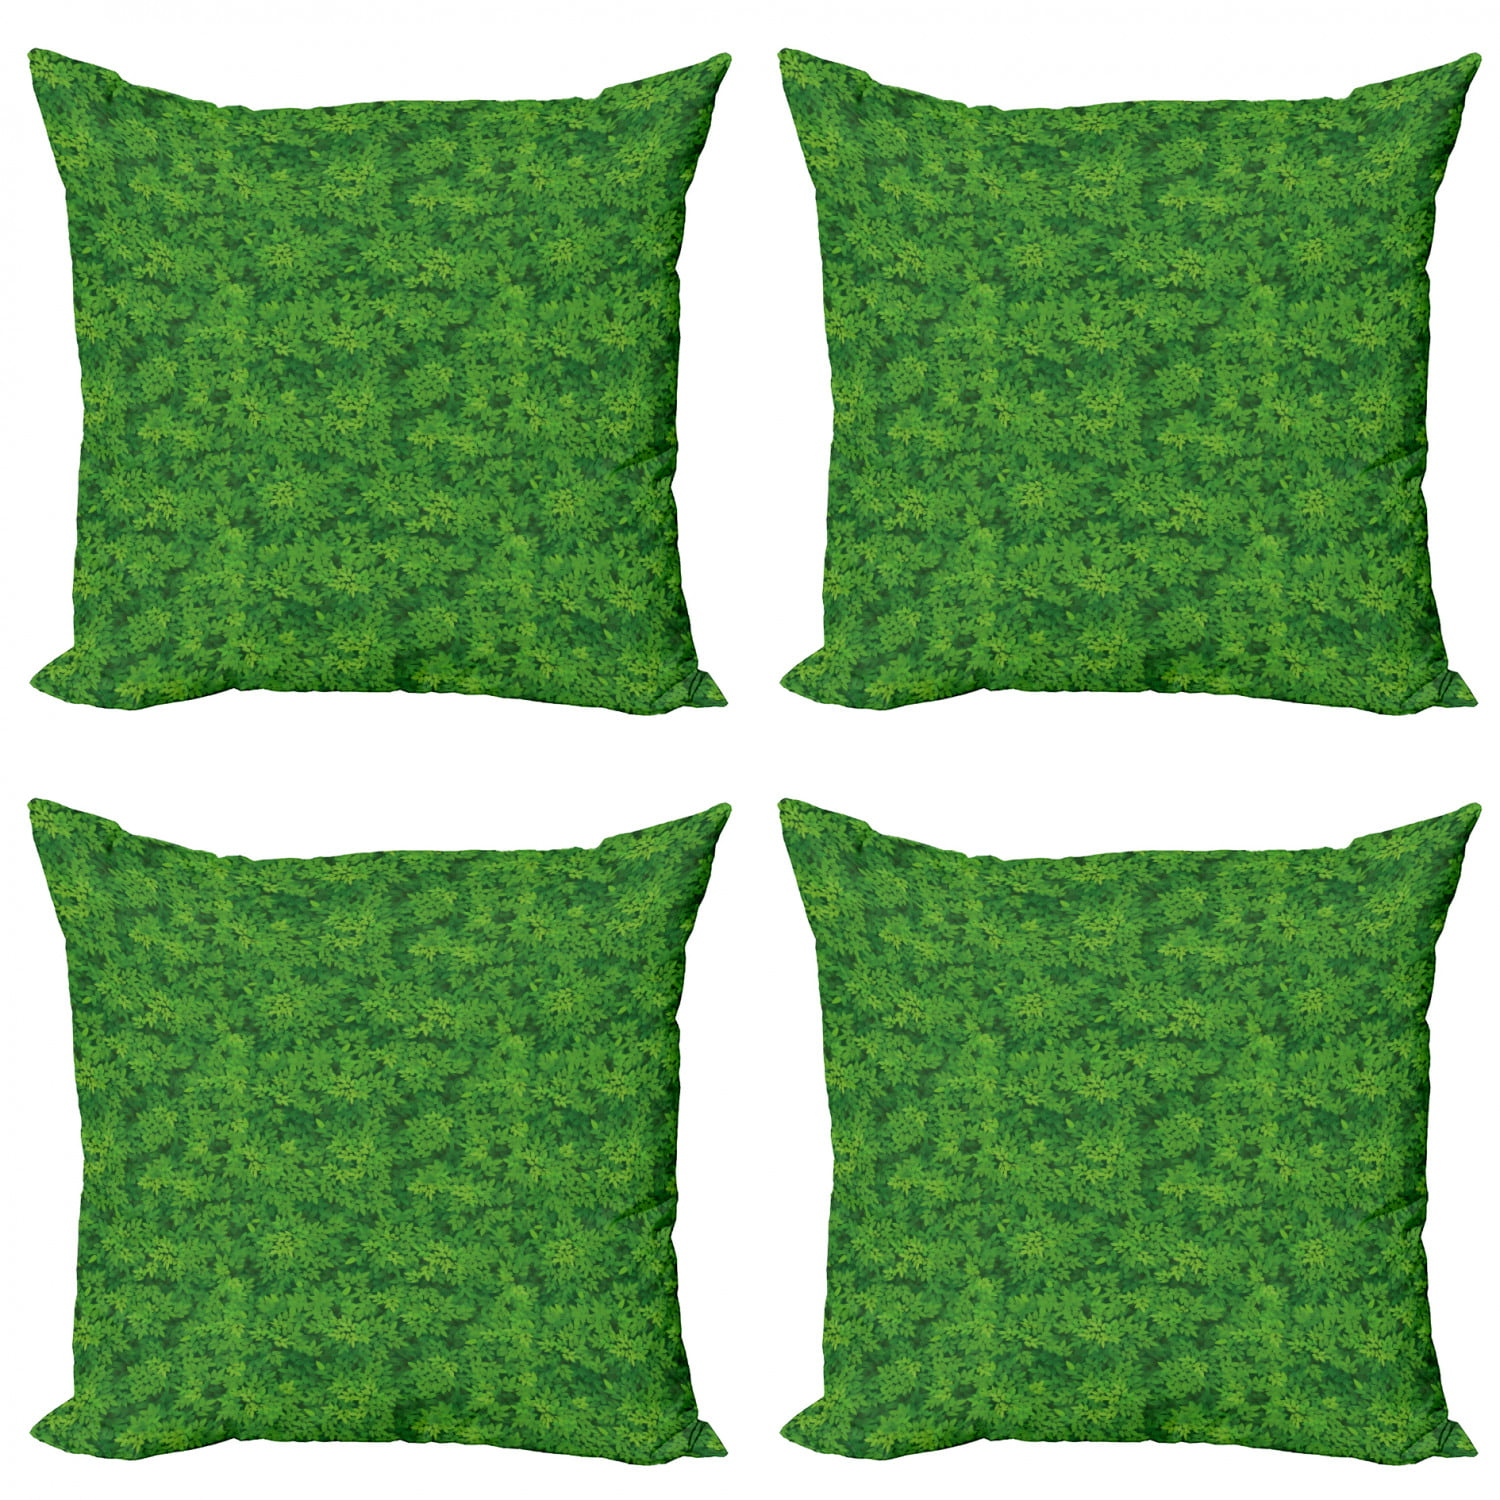 Botanical Throw Pillow Cushion Case Pack Of 4 Overview Scene Of Foliage Leafy Greenery Forest Items Modern Accent Double Sided Print 4 Sizes Fern Green Emerald By Ambesonne Walmart Com Walmart Com